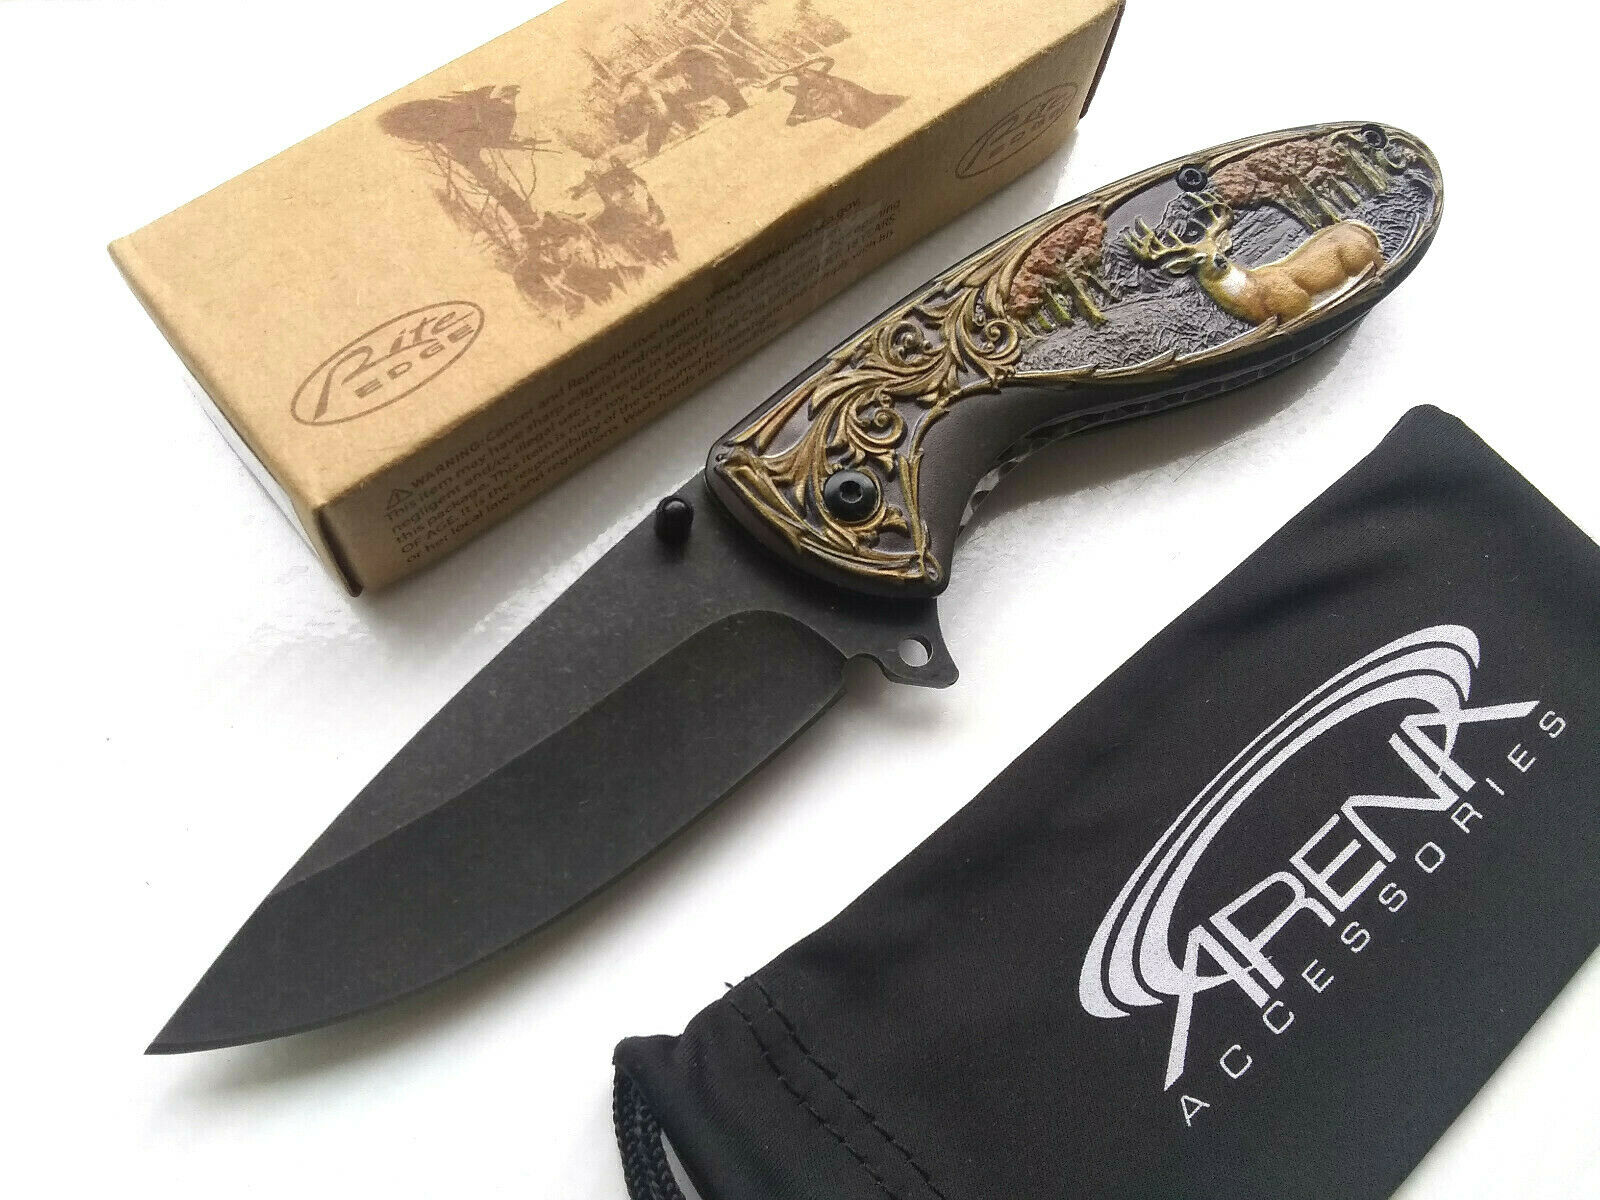 Rite Edge Forest Hunting Deer Design Ornate Honeysuckle Scrollwork Scallop Spring Assisted Pocket Knife EDC Gift